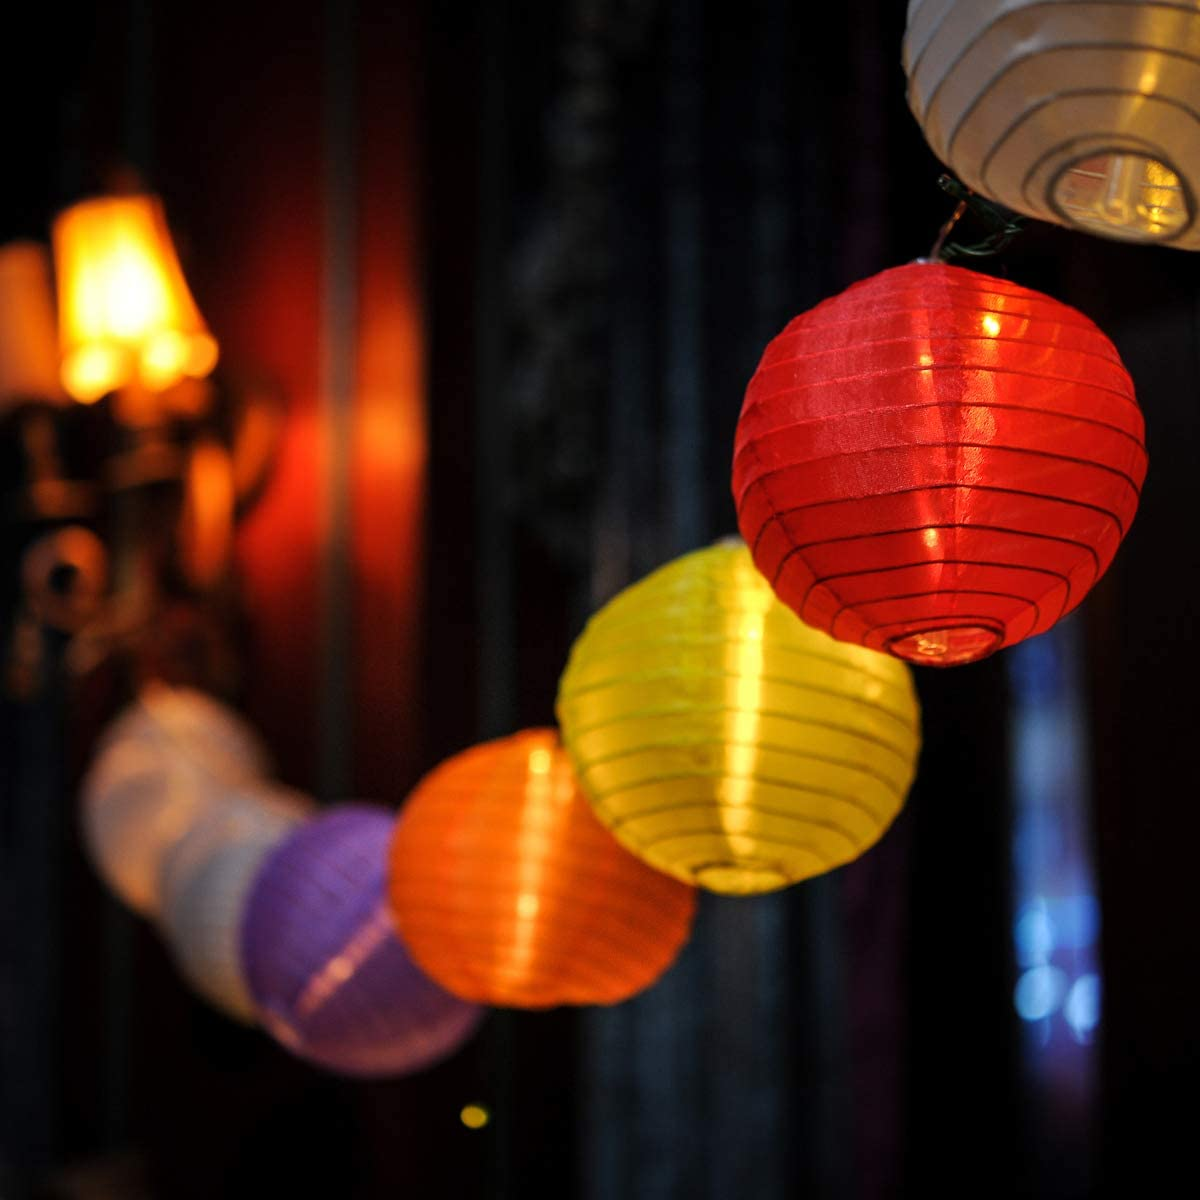 Festival Depot 12FT 20 Pcs Decorative Paper Lantern String Lights for Outdoor Garden Deck Balcony and Indoor Room Christmas Halloween Party Colorful (String Lantern Light)